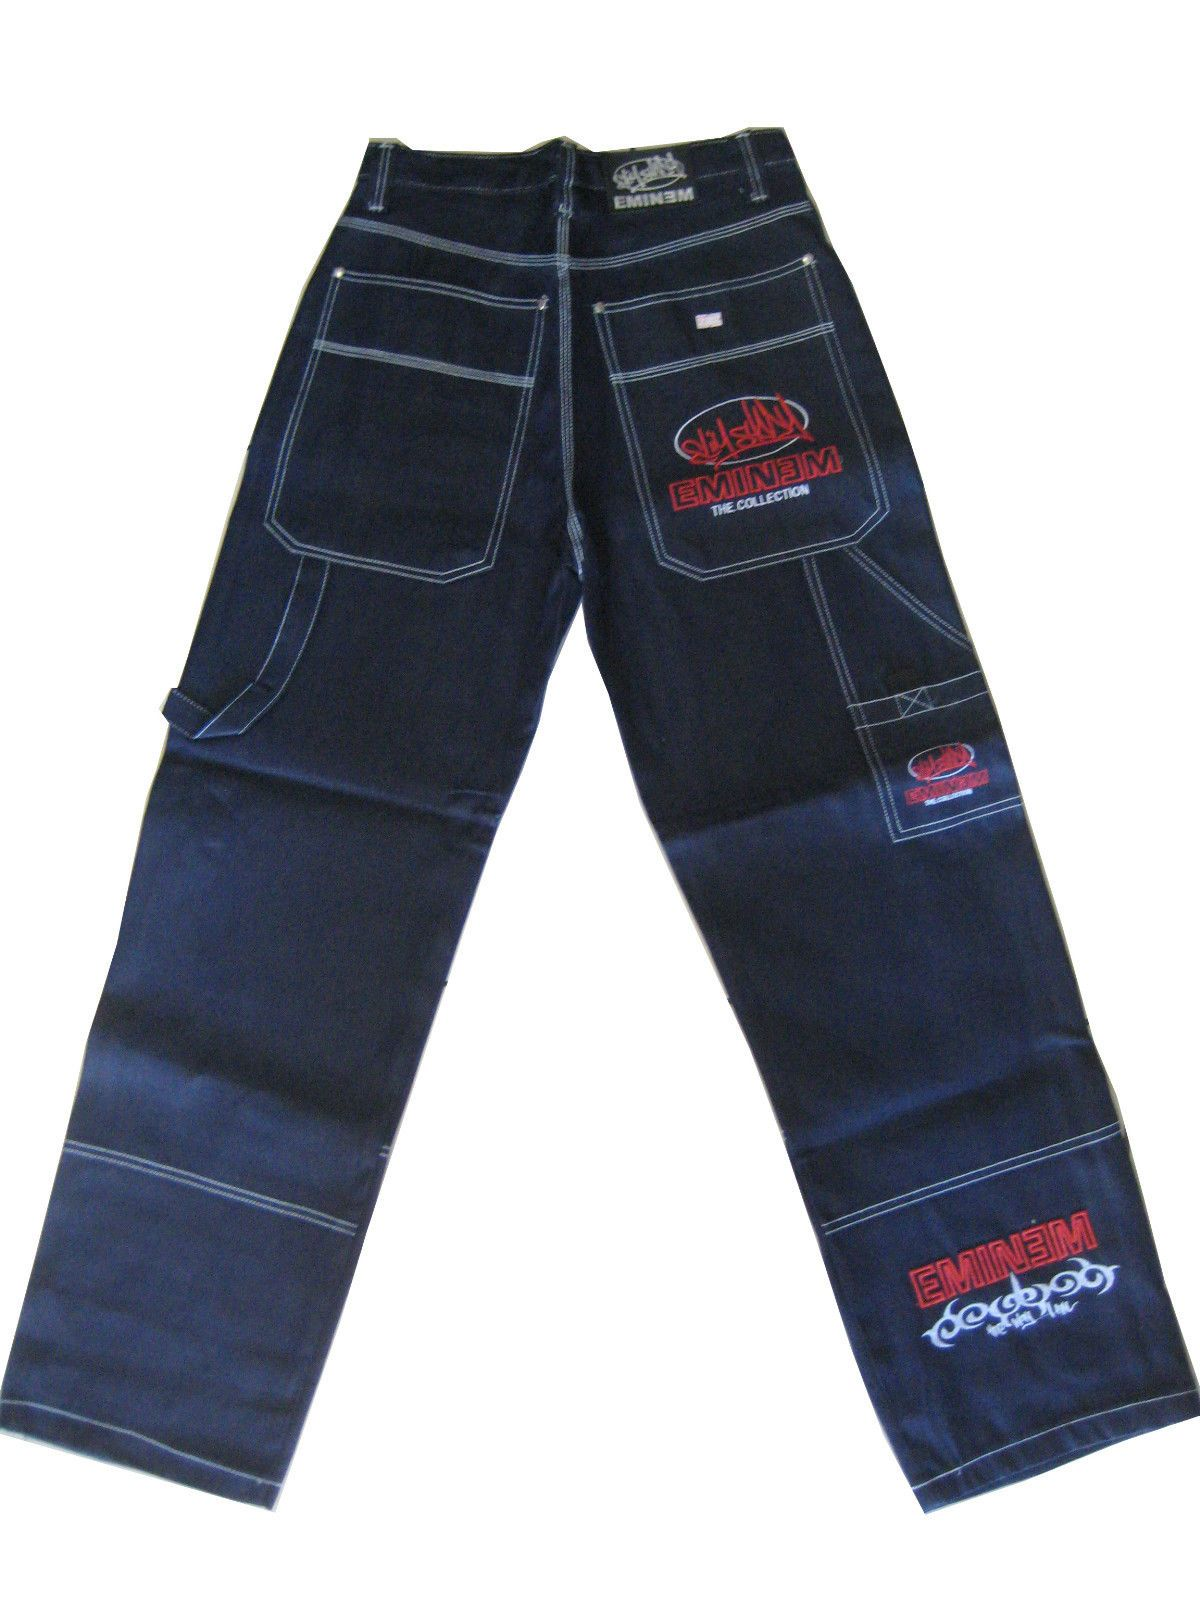 Eminem Pants : eminem, pants, EMINEM, -=BLUE=-, Baggy, Loose, Jeans, Pants, Cargo, Jeans,, Sagging, Pants,